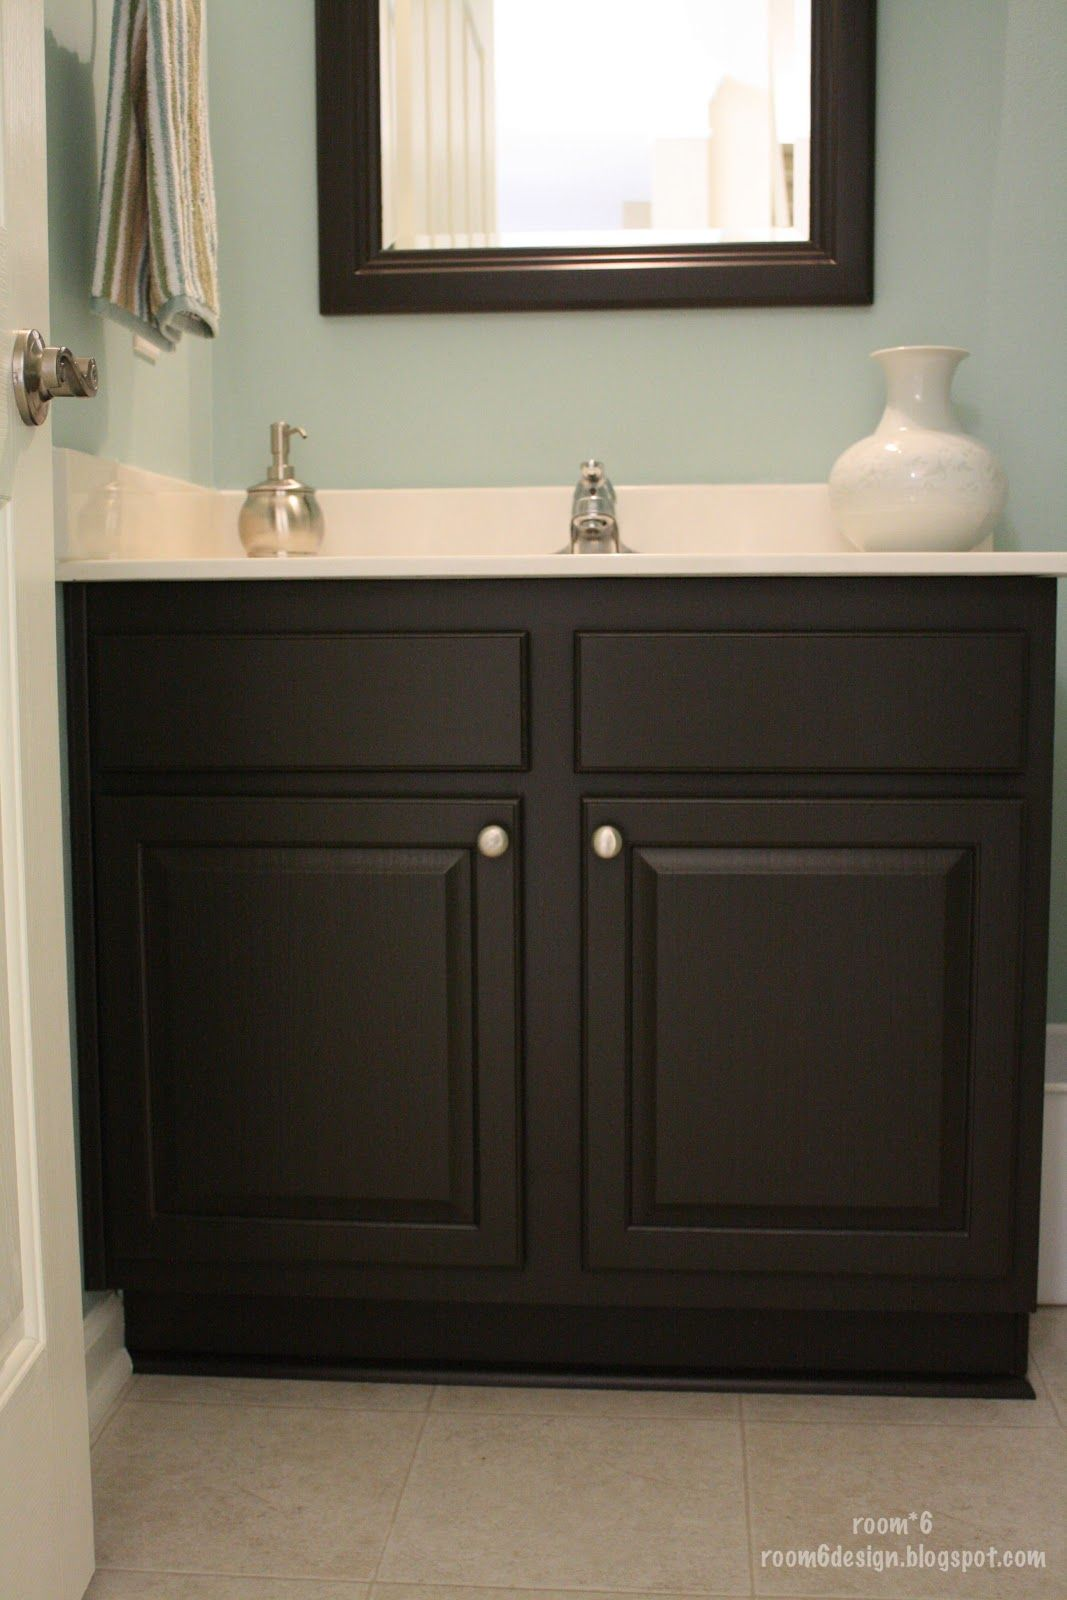 Painted Bathroom Cabinets Oh I Want To Paint Our Bathroom Cabinet For The Home Painting